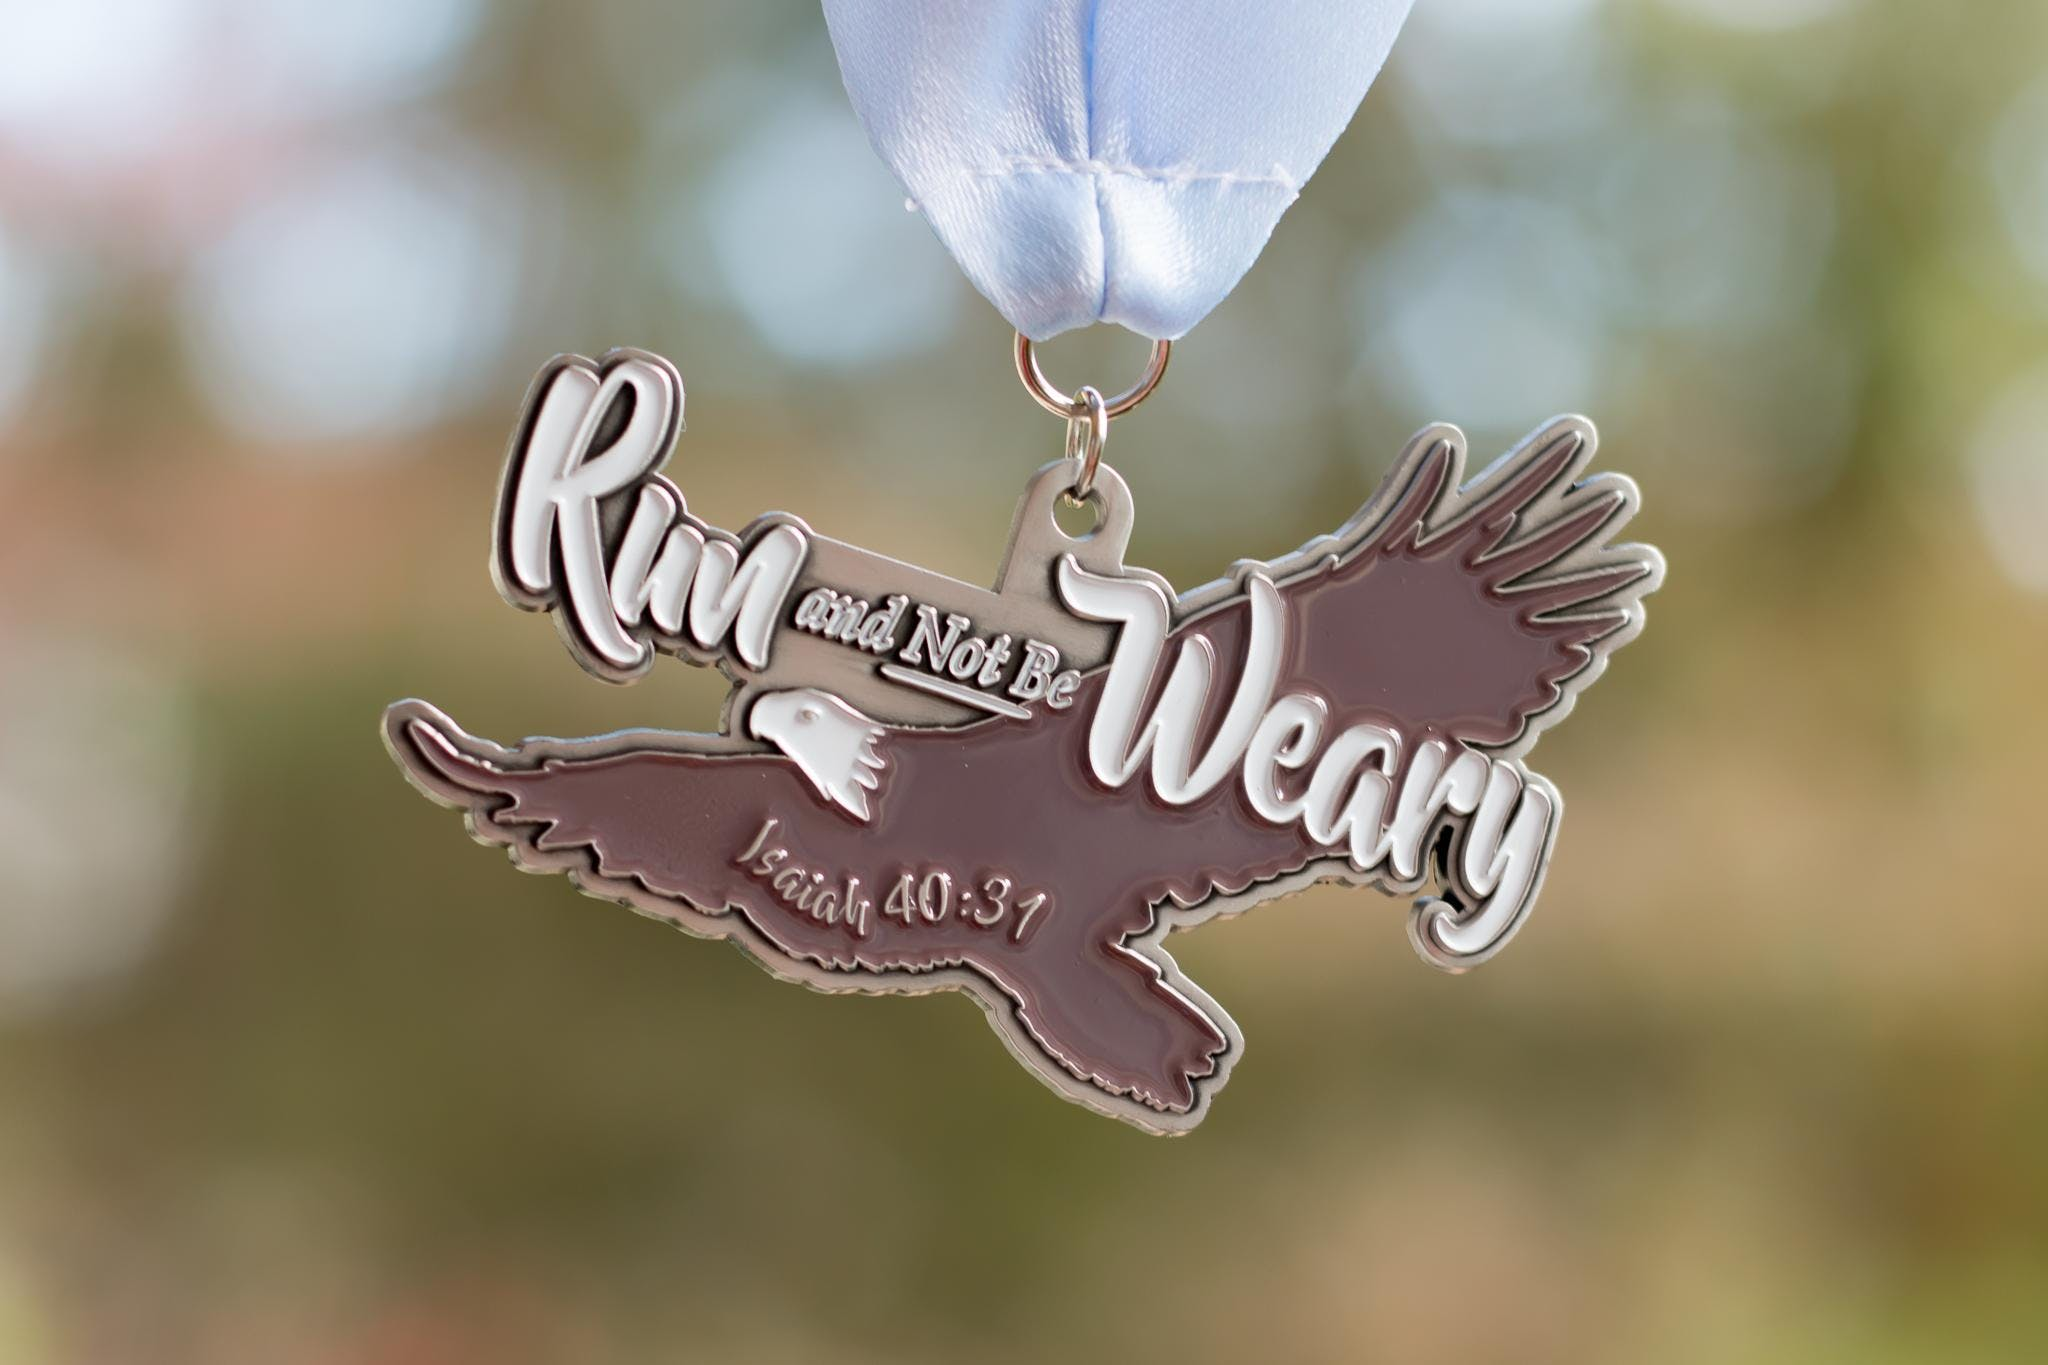 Run and Not Be Weary 1 Mile, 5K, 10K, 13.1, 26.2 - Phoenix